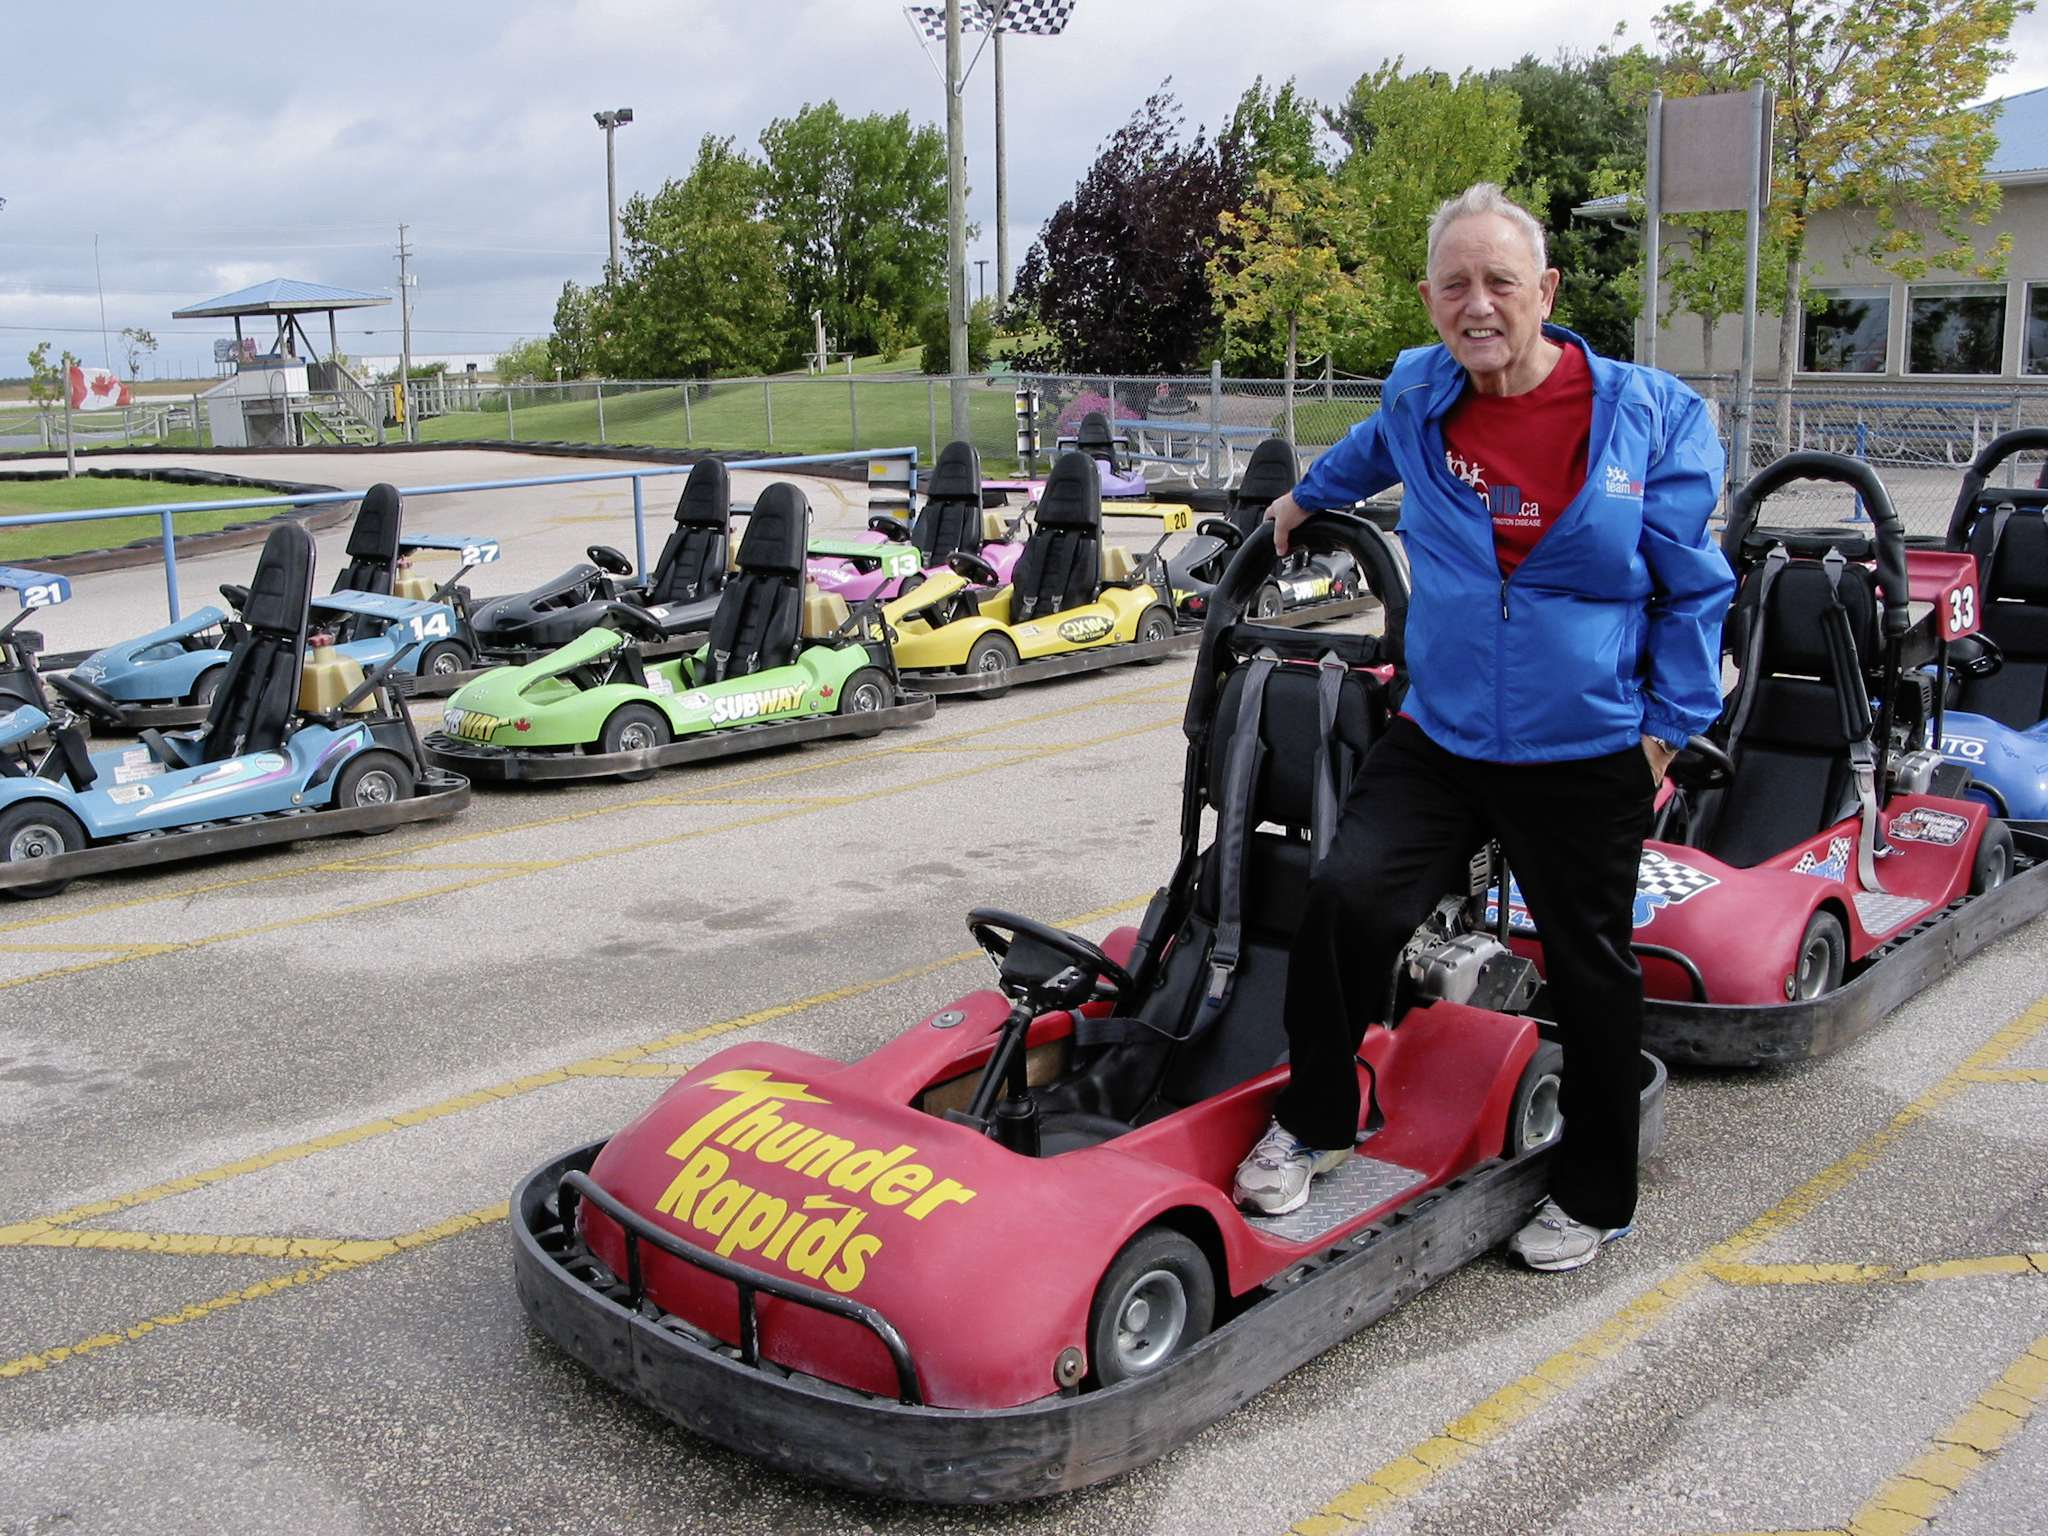 Vern Barrett, with the Winnipeg chapter of the Huntington Society of Canada, is shown with the go-karts at Thunder Rapids in Headingley. Teams of drivers will steer the karts around the track at 5058 Portage Ave. on Sun., Sept. 8 to fundraise in the 24th annual Huntington's Indy Go-Kart Challenge.